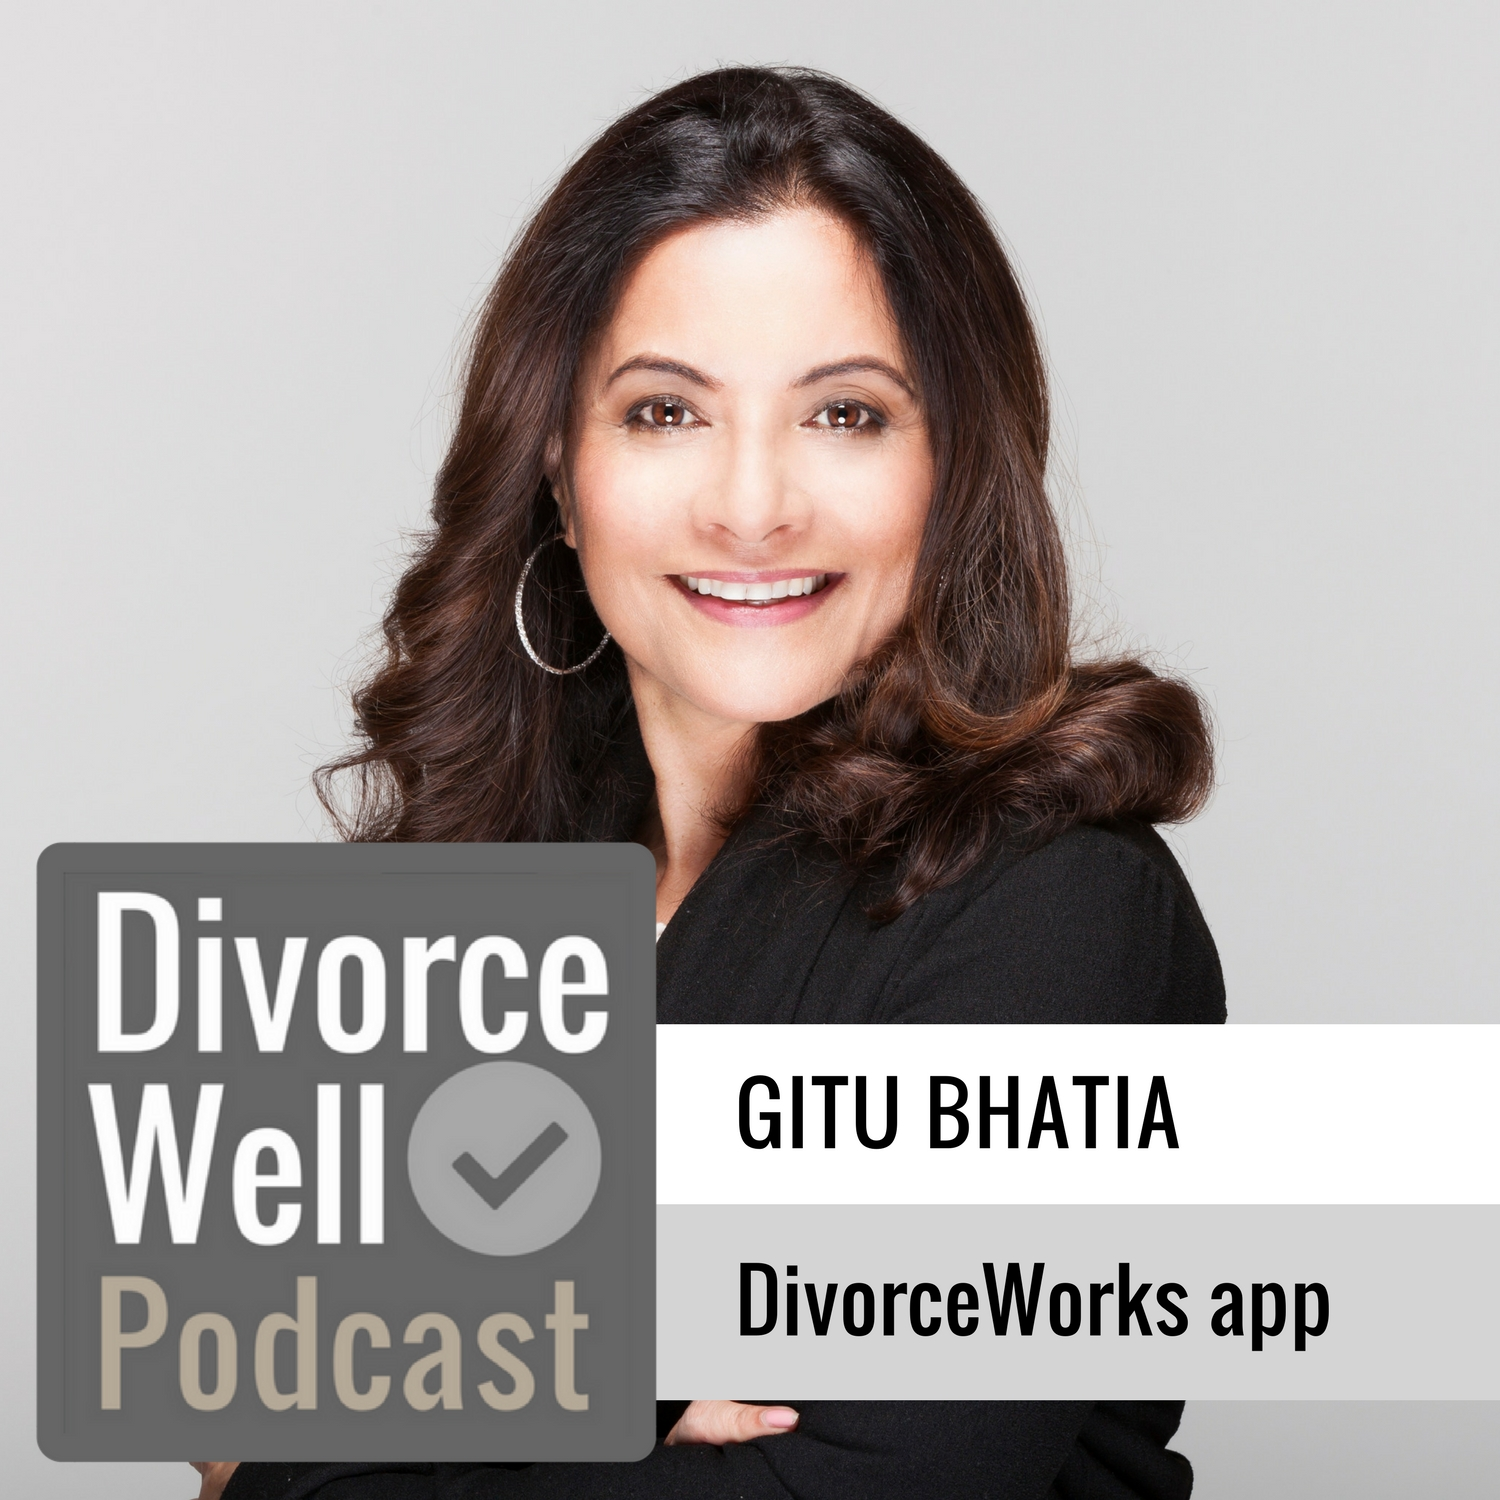 Gitu Bhatia on the Divorce Well Podcast about the DivorceWorks app for managing emotions